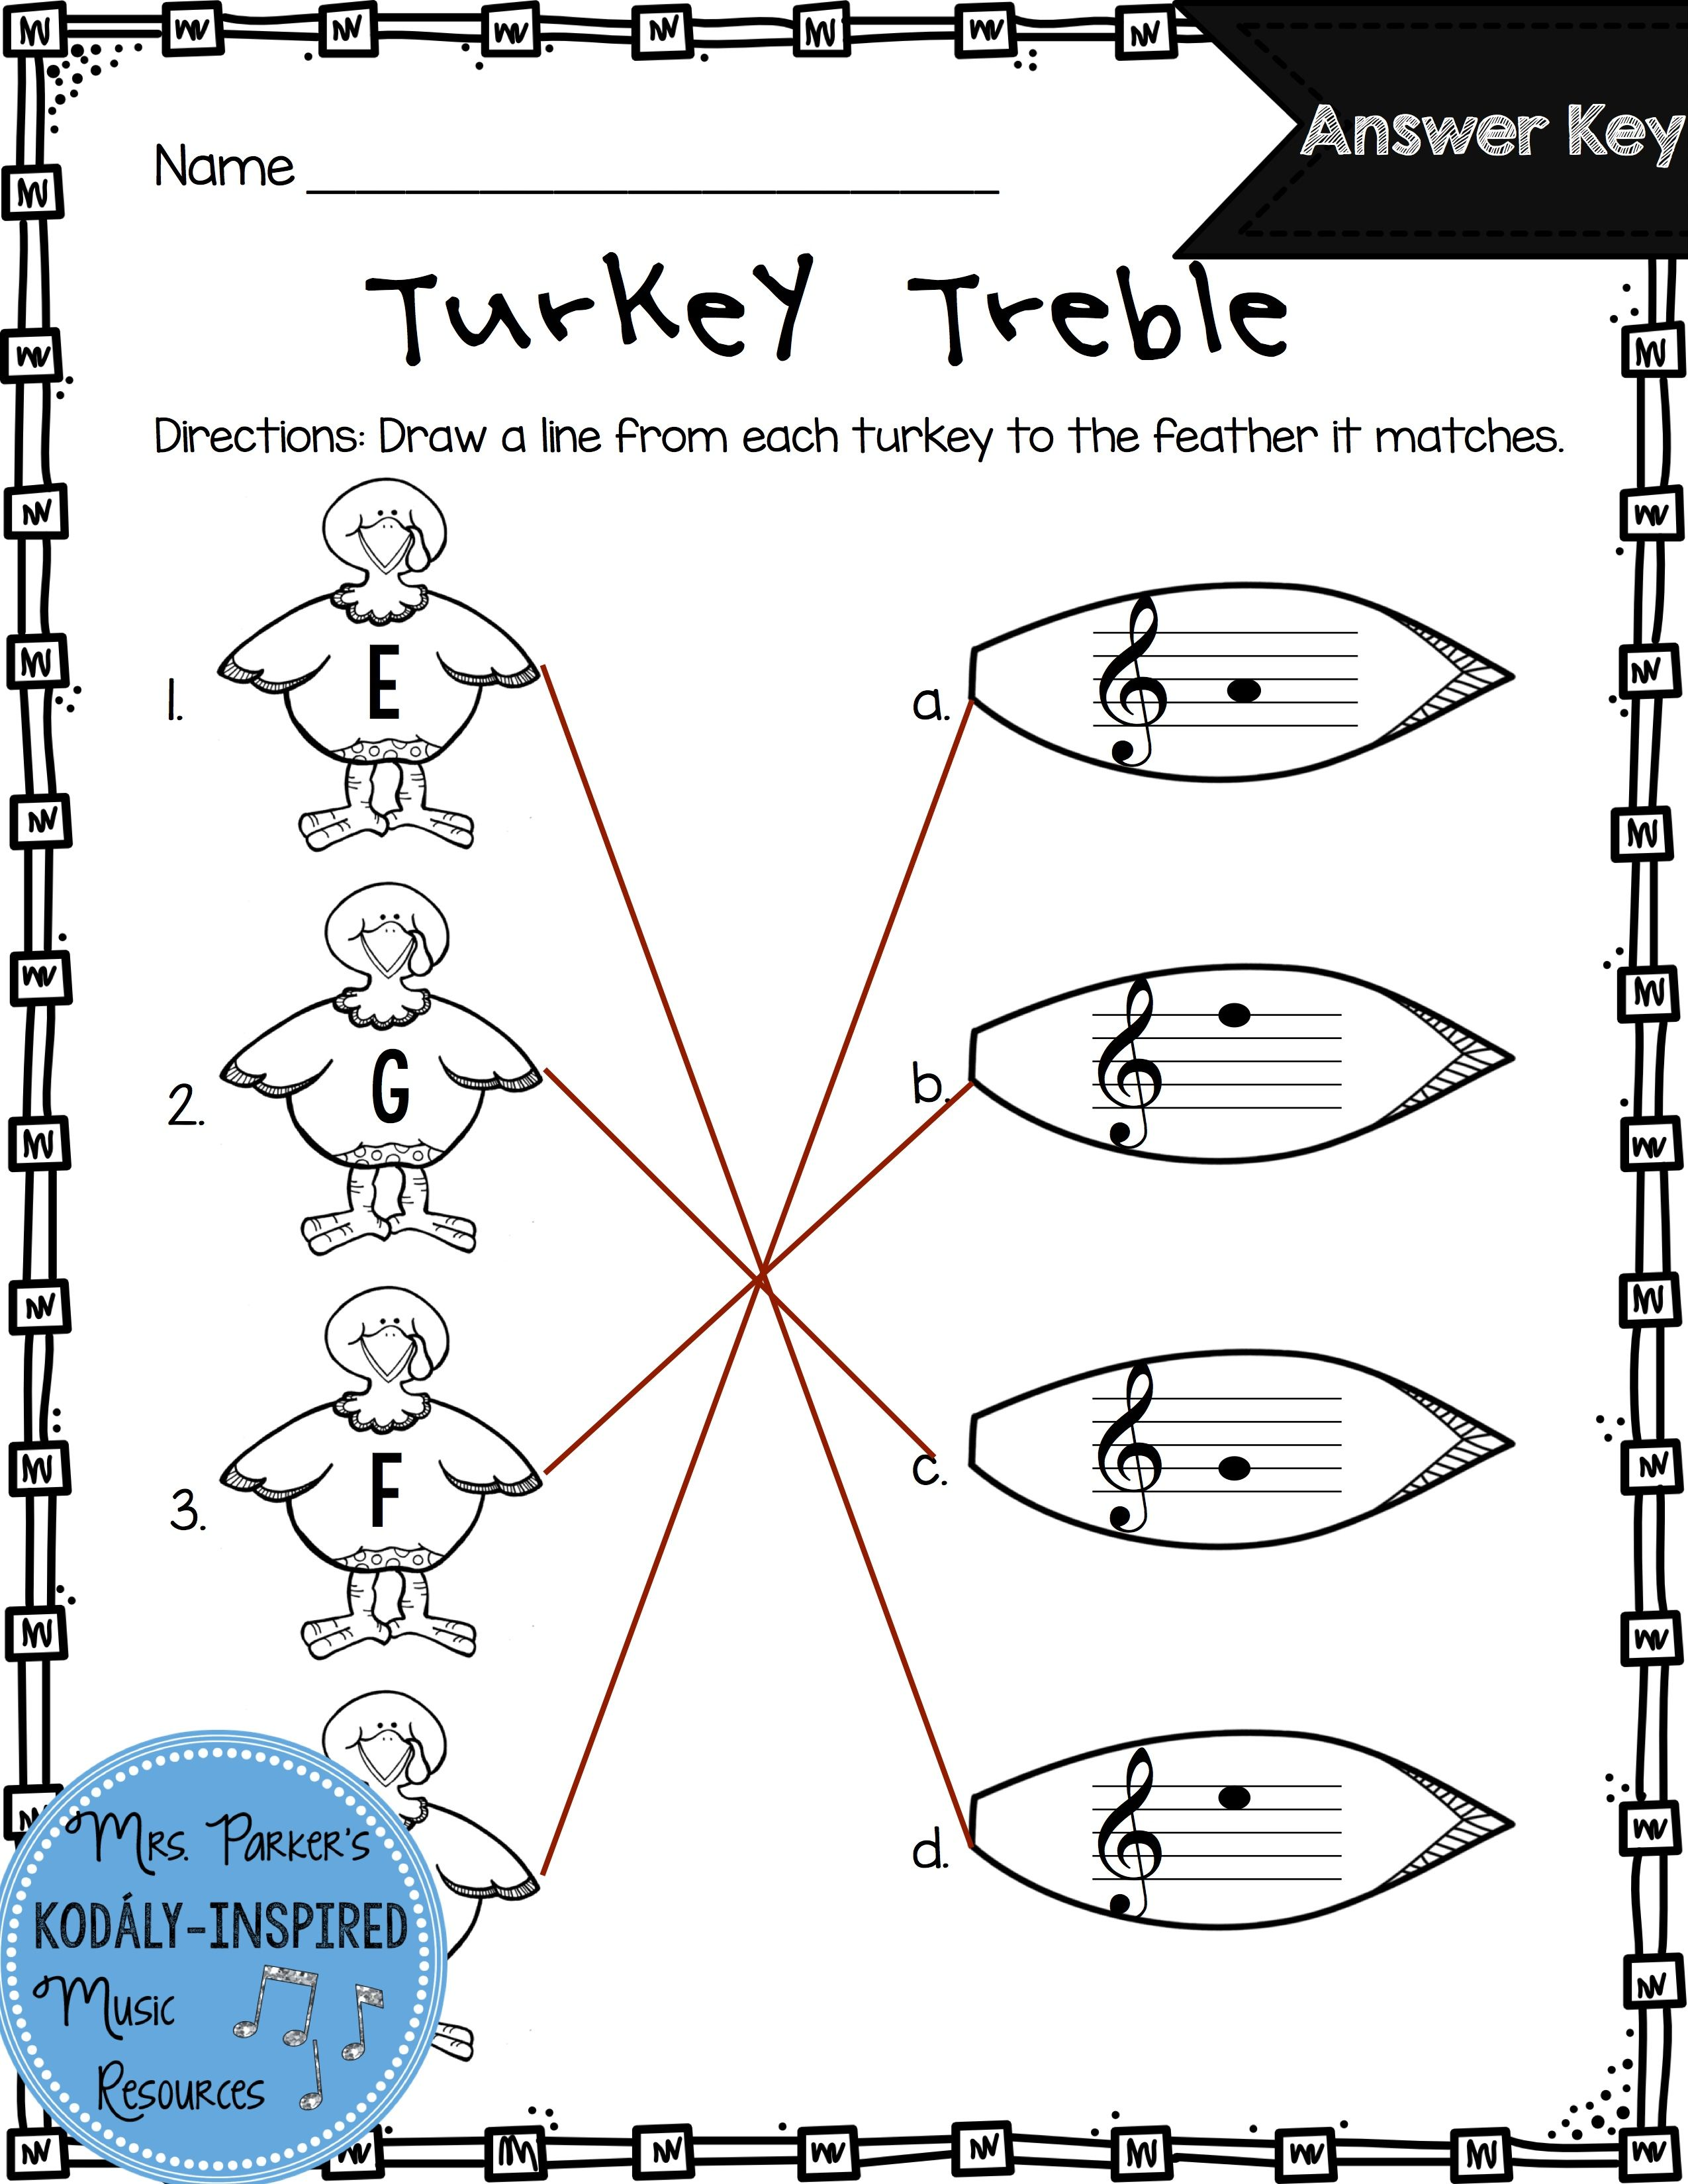 Treble Clef Match Up Worksheet From Turkey Treble Perfect For Fun And Assessment Violin Lessons Learn Violin Music Worksheets